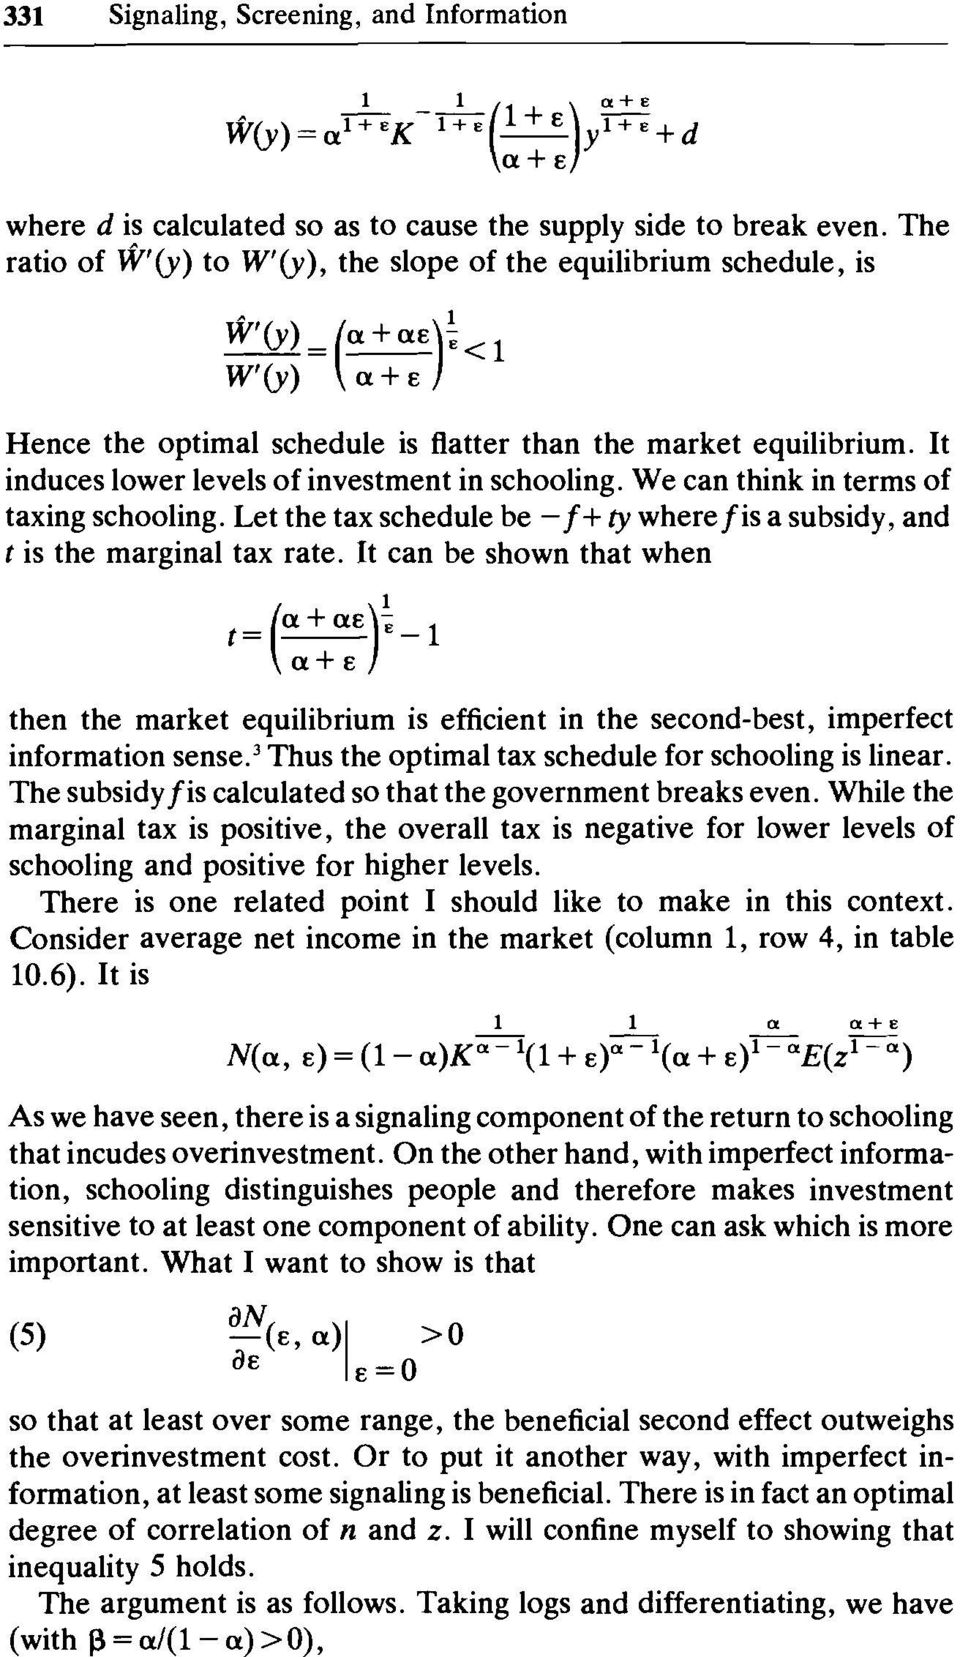 We can think in terms of taxing schooling. Let the tax schedule be -f+ ty wherefis a subsidy, and f is the marginal tax rate.